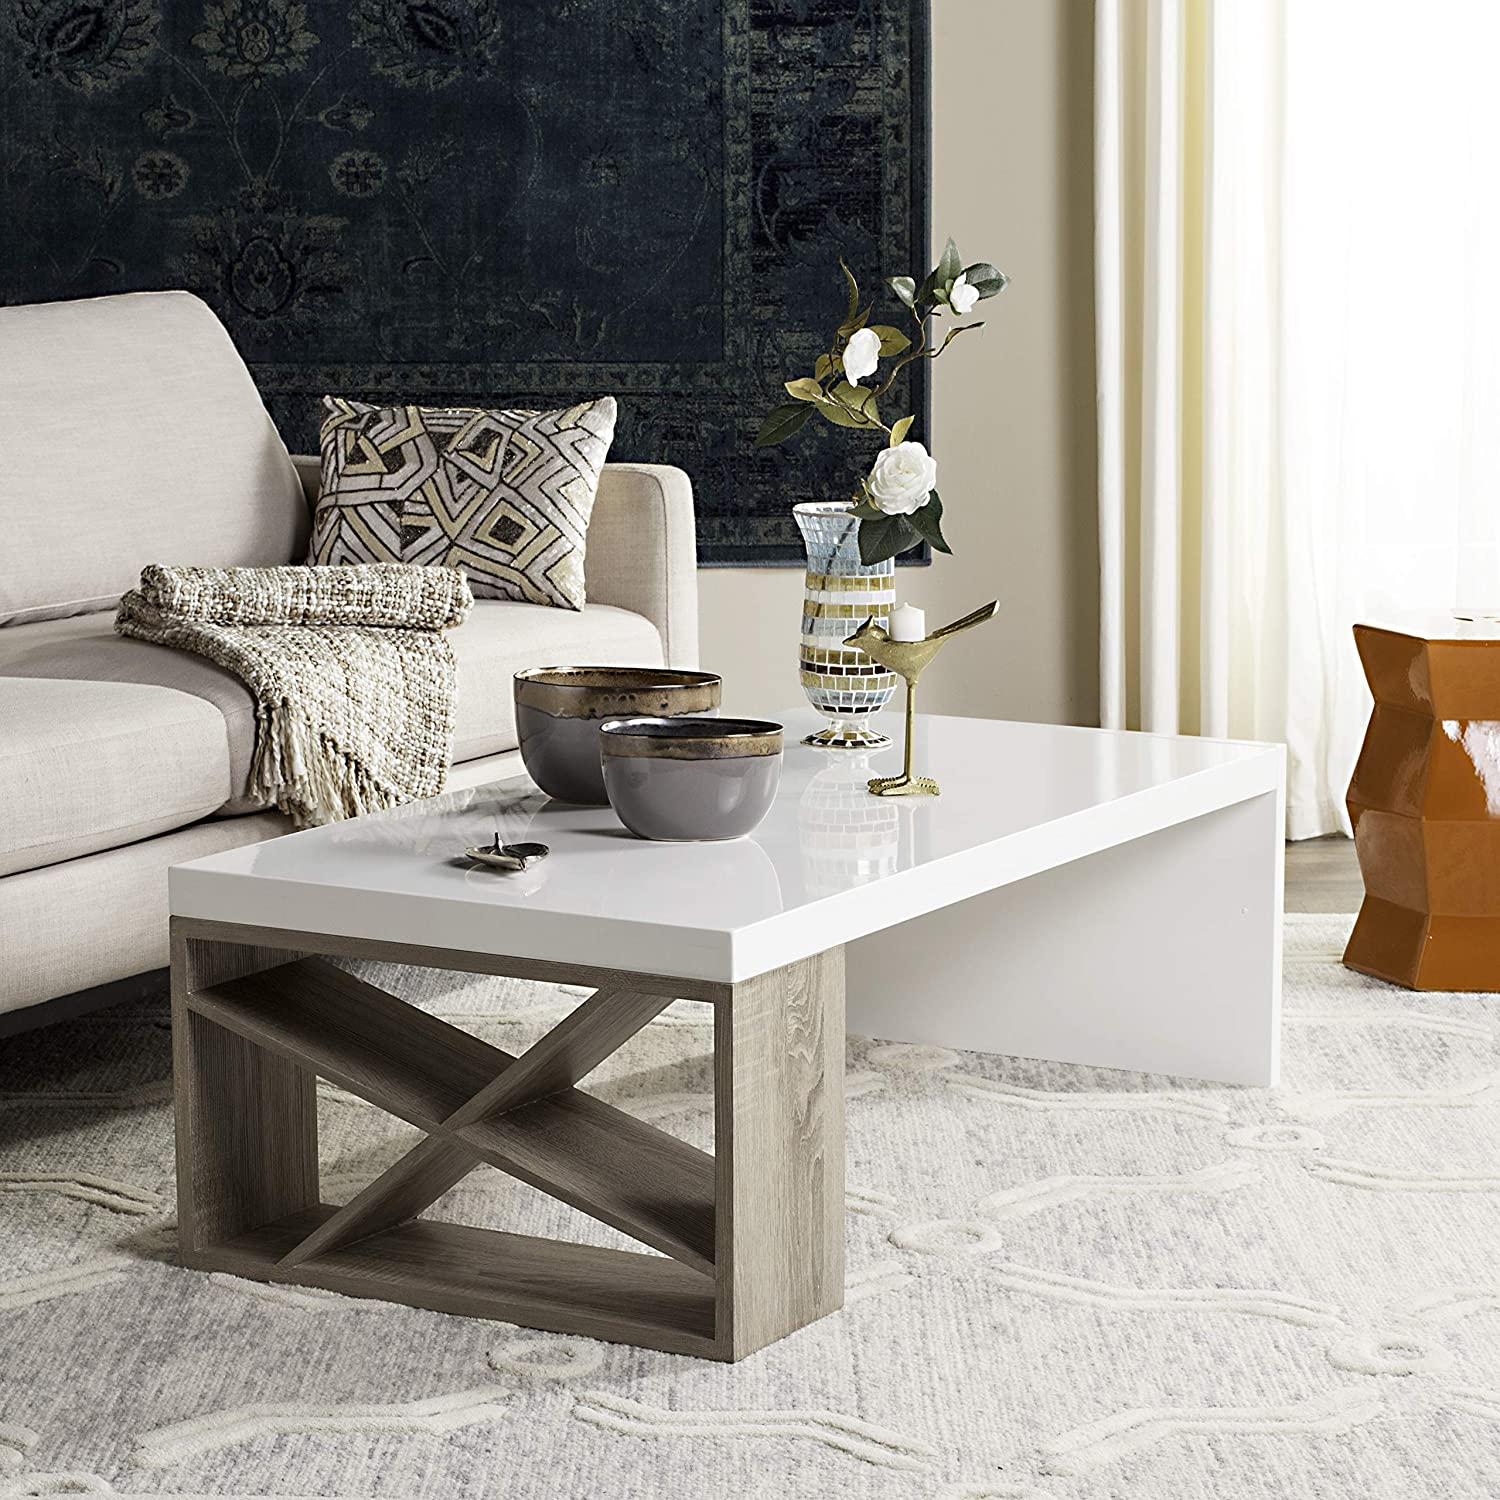 affordable-white-oak-coffee-table-modern-farmhouse-decor-ideas-glossy-tabletop-neutral-wood-finish-accent